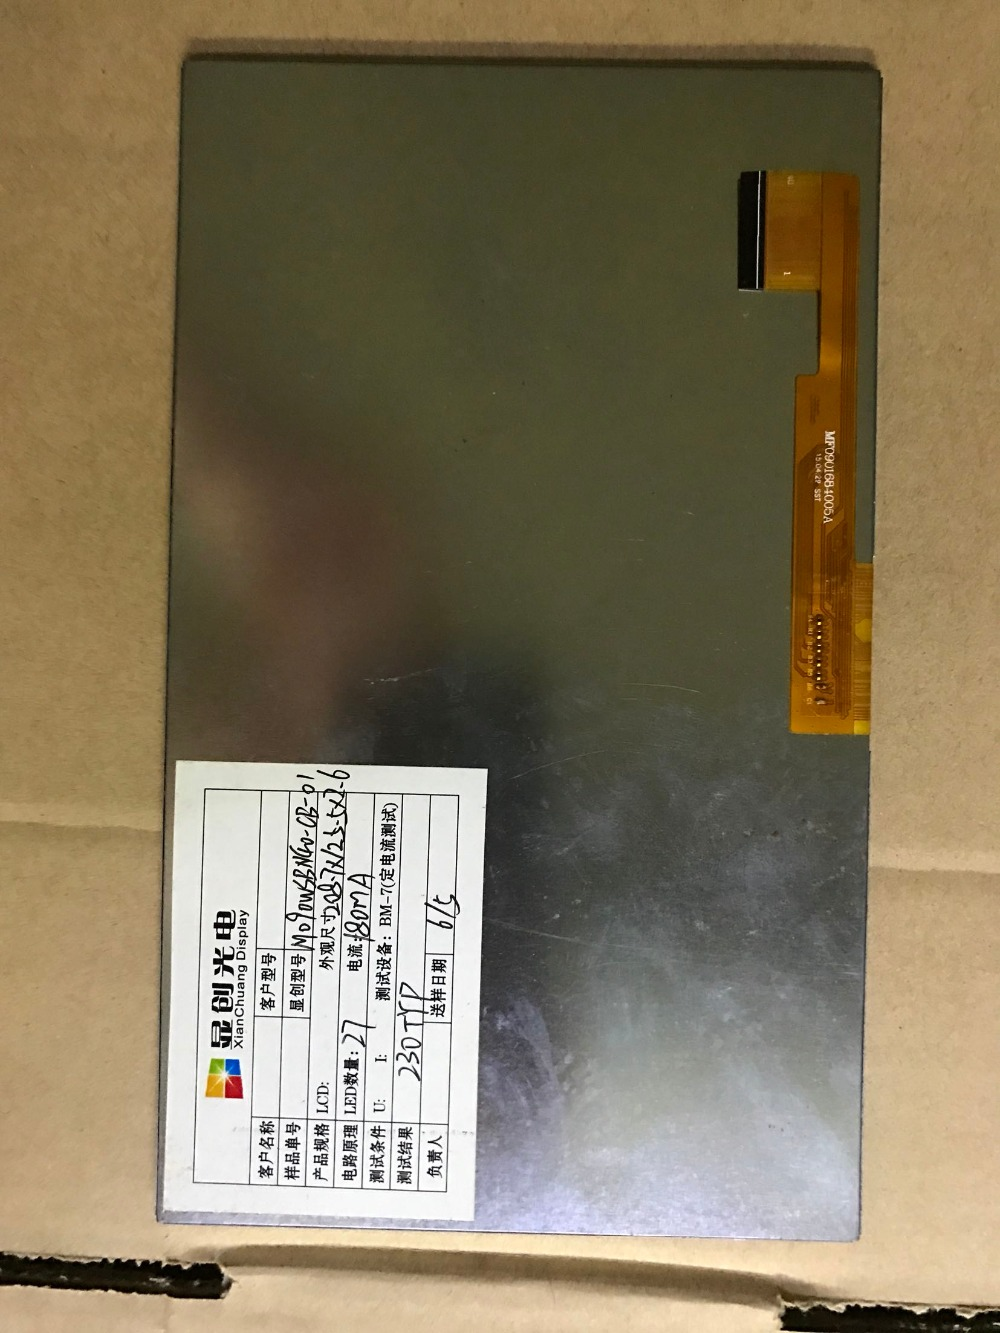 free shipping OriginalNew 9 inch LCD screen cable number; MF090168-4005A free shipping originalnew 9 inch lcd screen cable number fvi900c001 50a